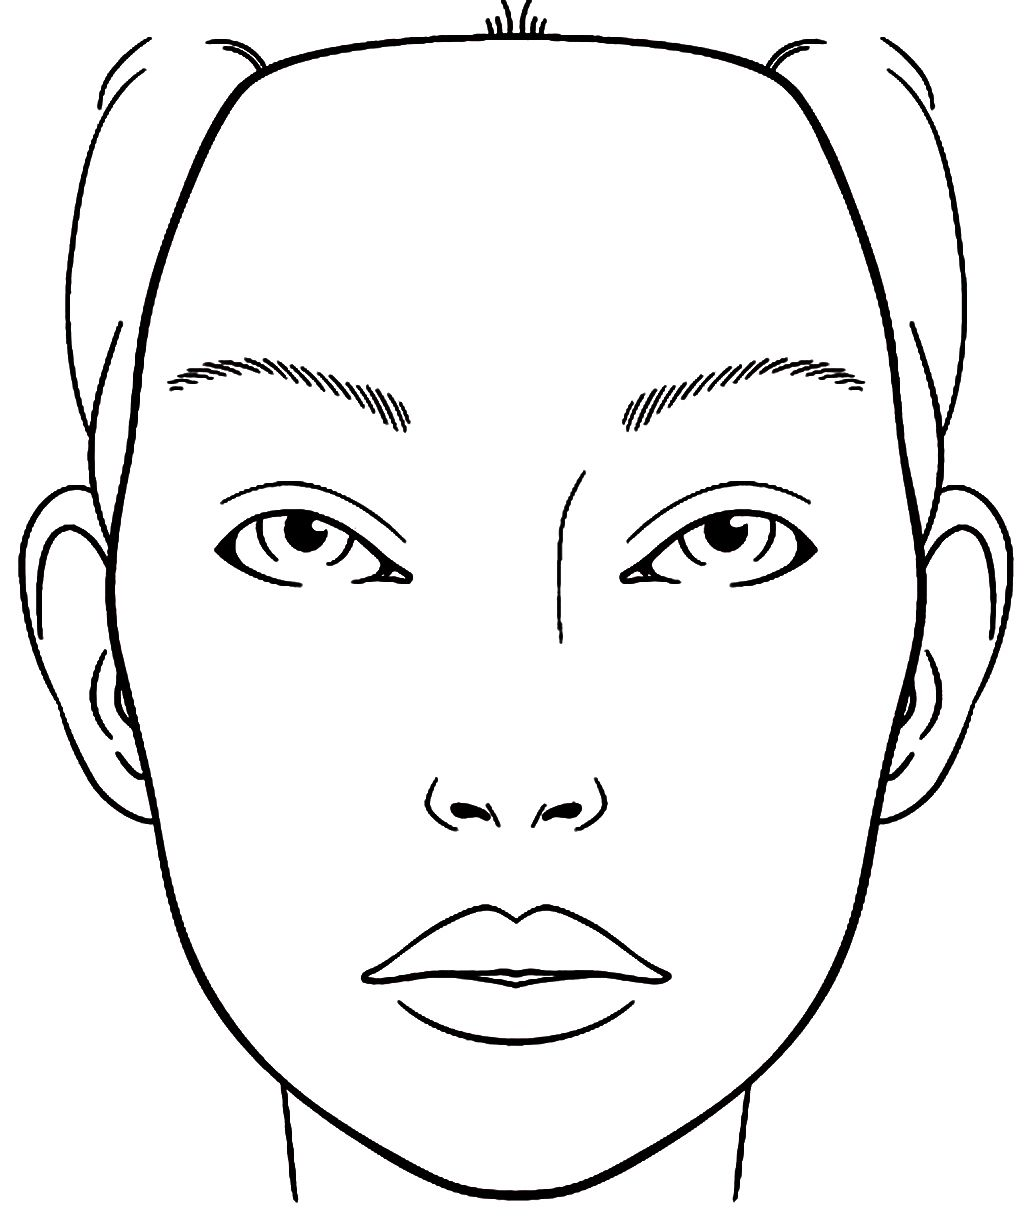 blank face chart sketch coloring page teagans 7th